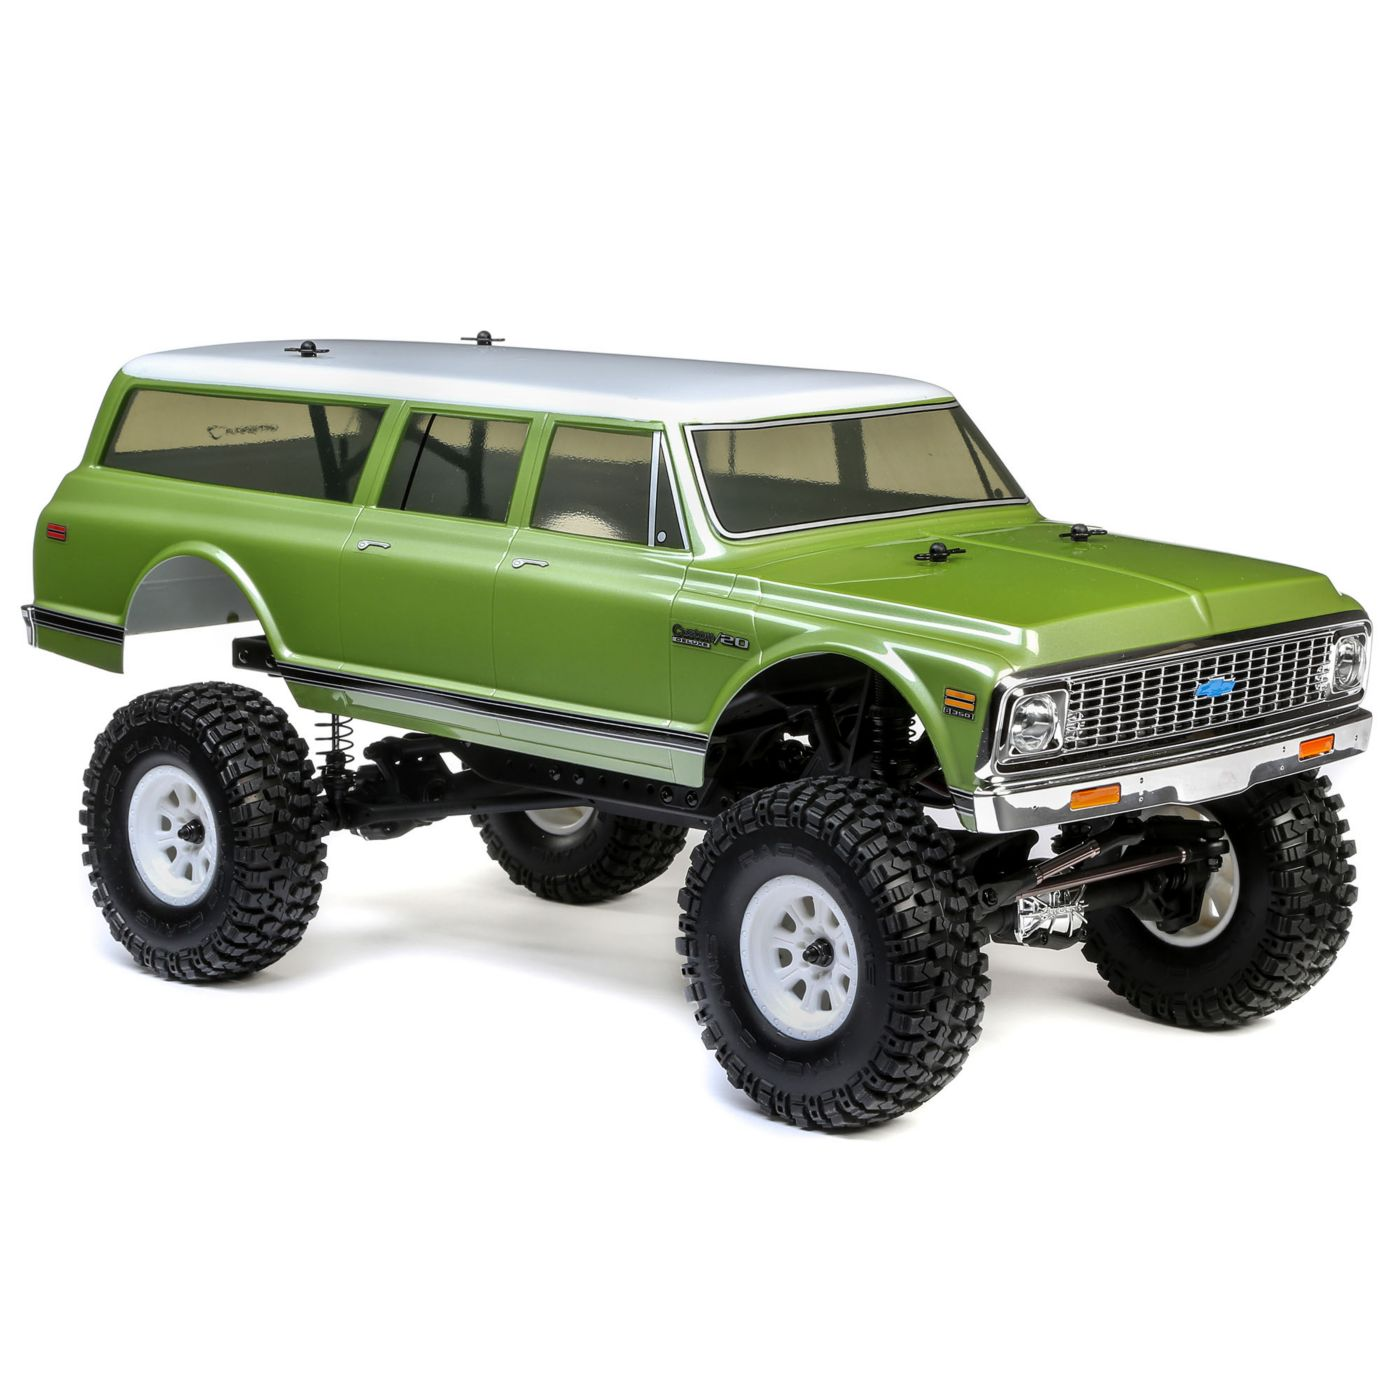 Vaterra 1972 Chevy Suburban Ascender-S: 1/10 4wd RTR ...